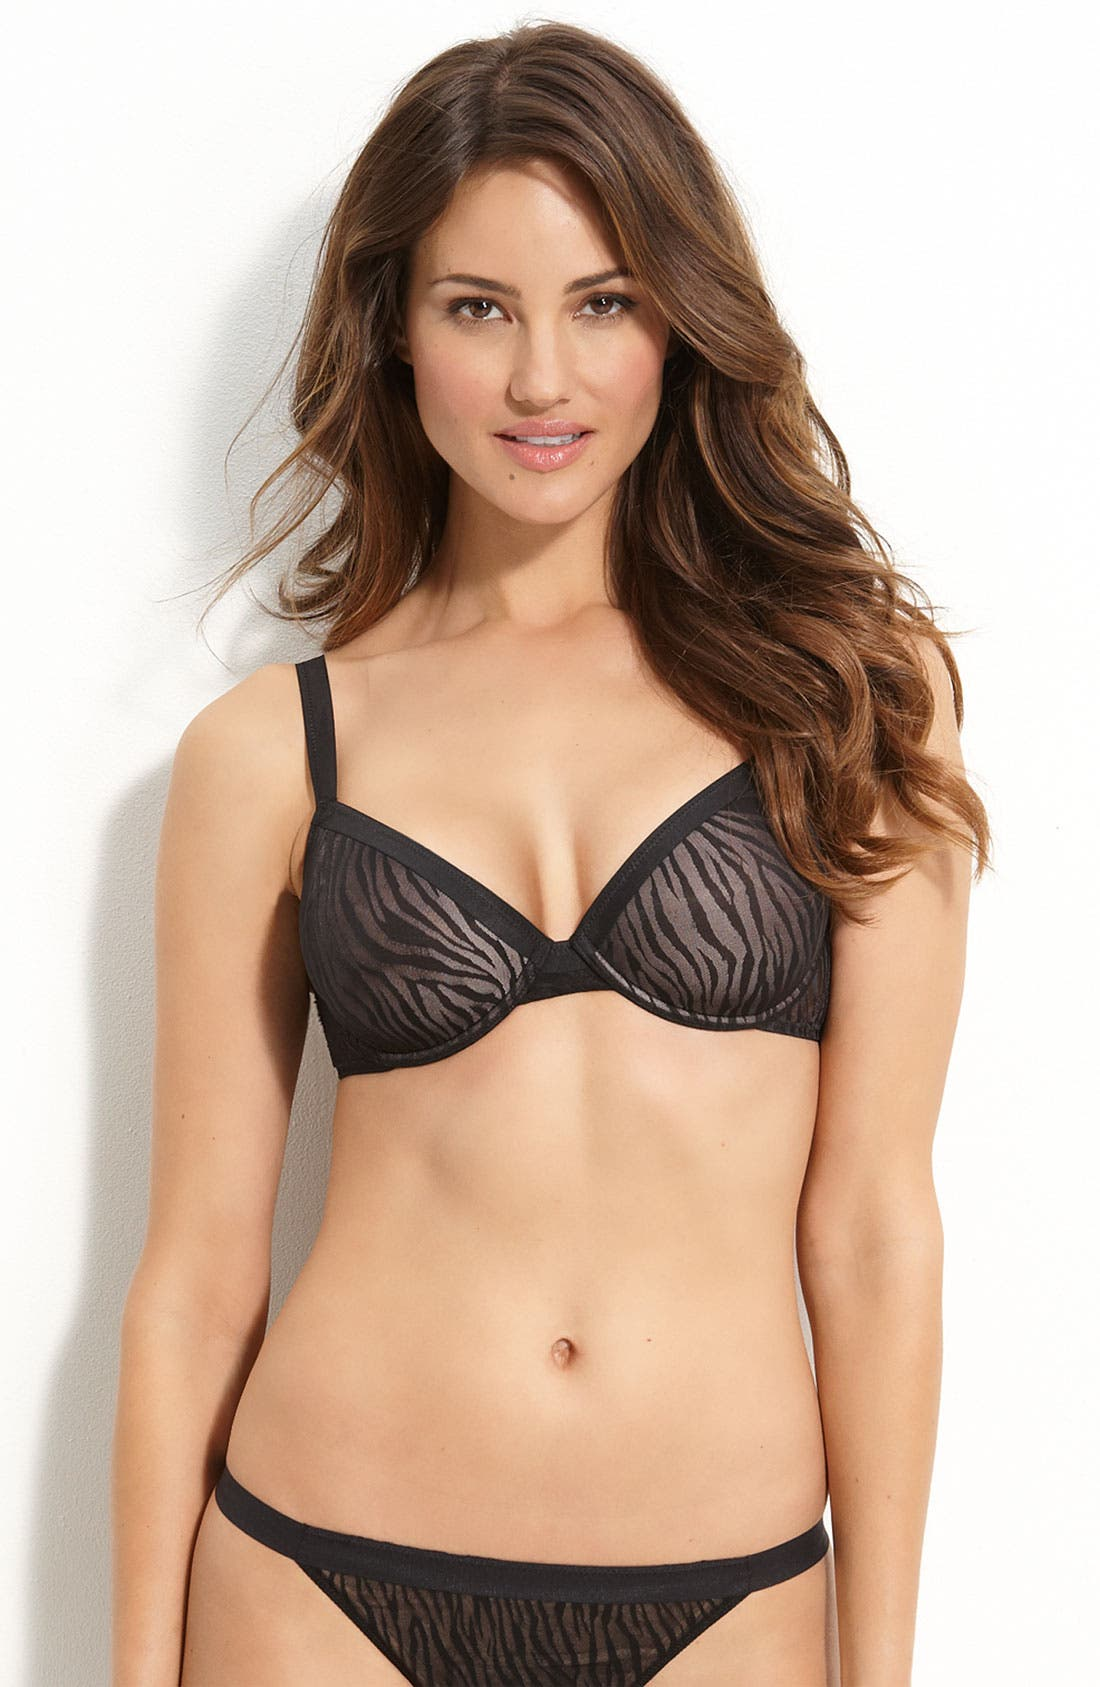 Alternate Image 1 Selected - On Gossamer 'Sheer Instinct' Contour Underwire Demi Bra